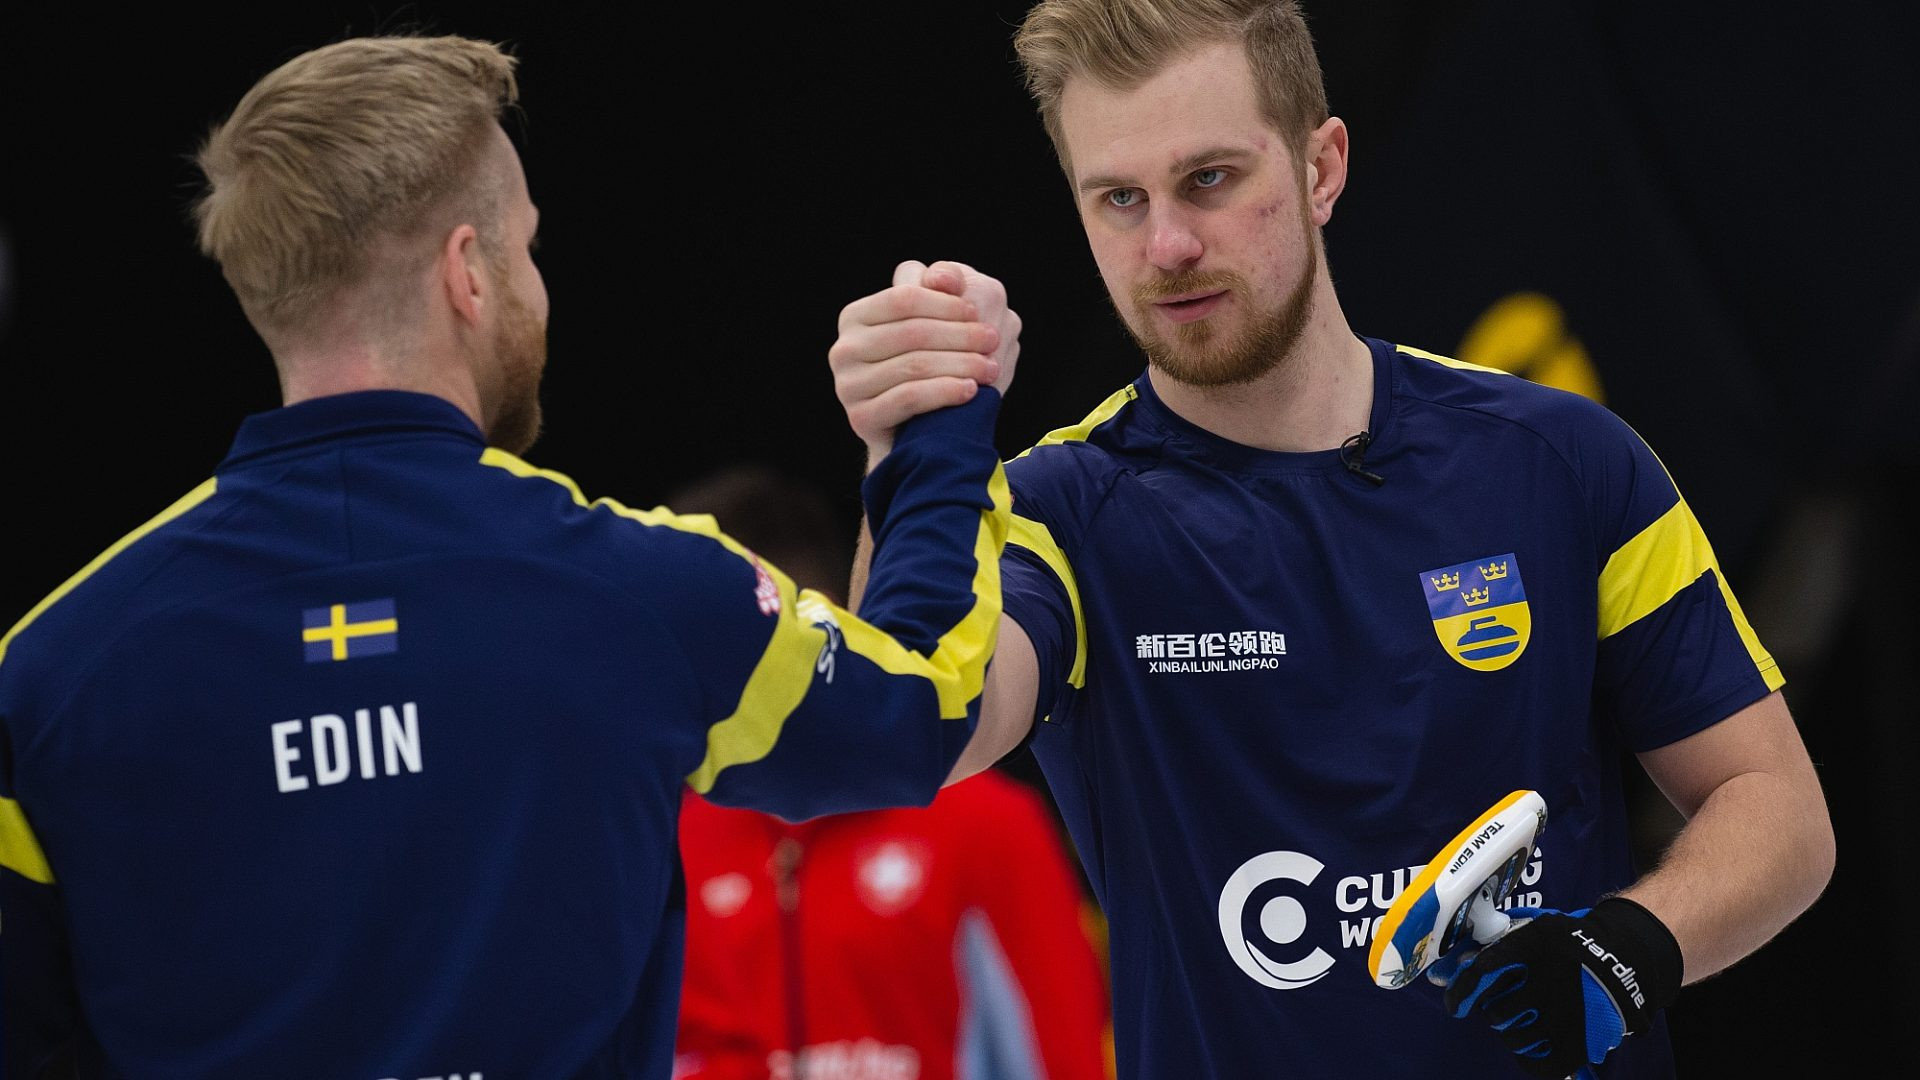 Niklas Edin's Swedish team are the reigning men's European champions ©WCF